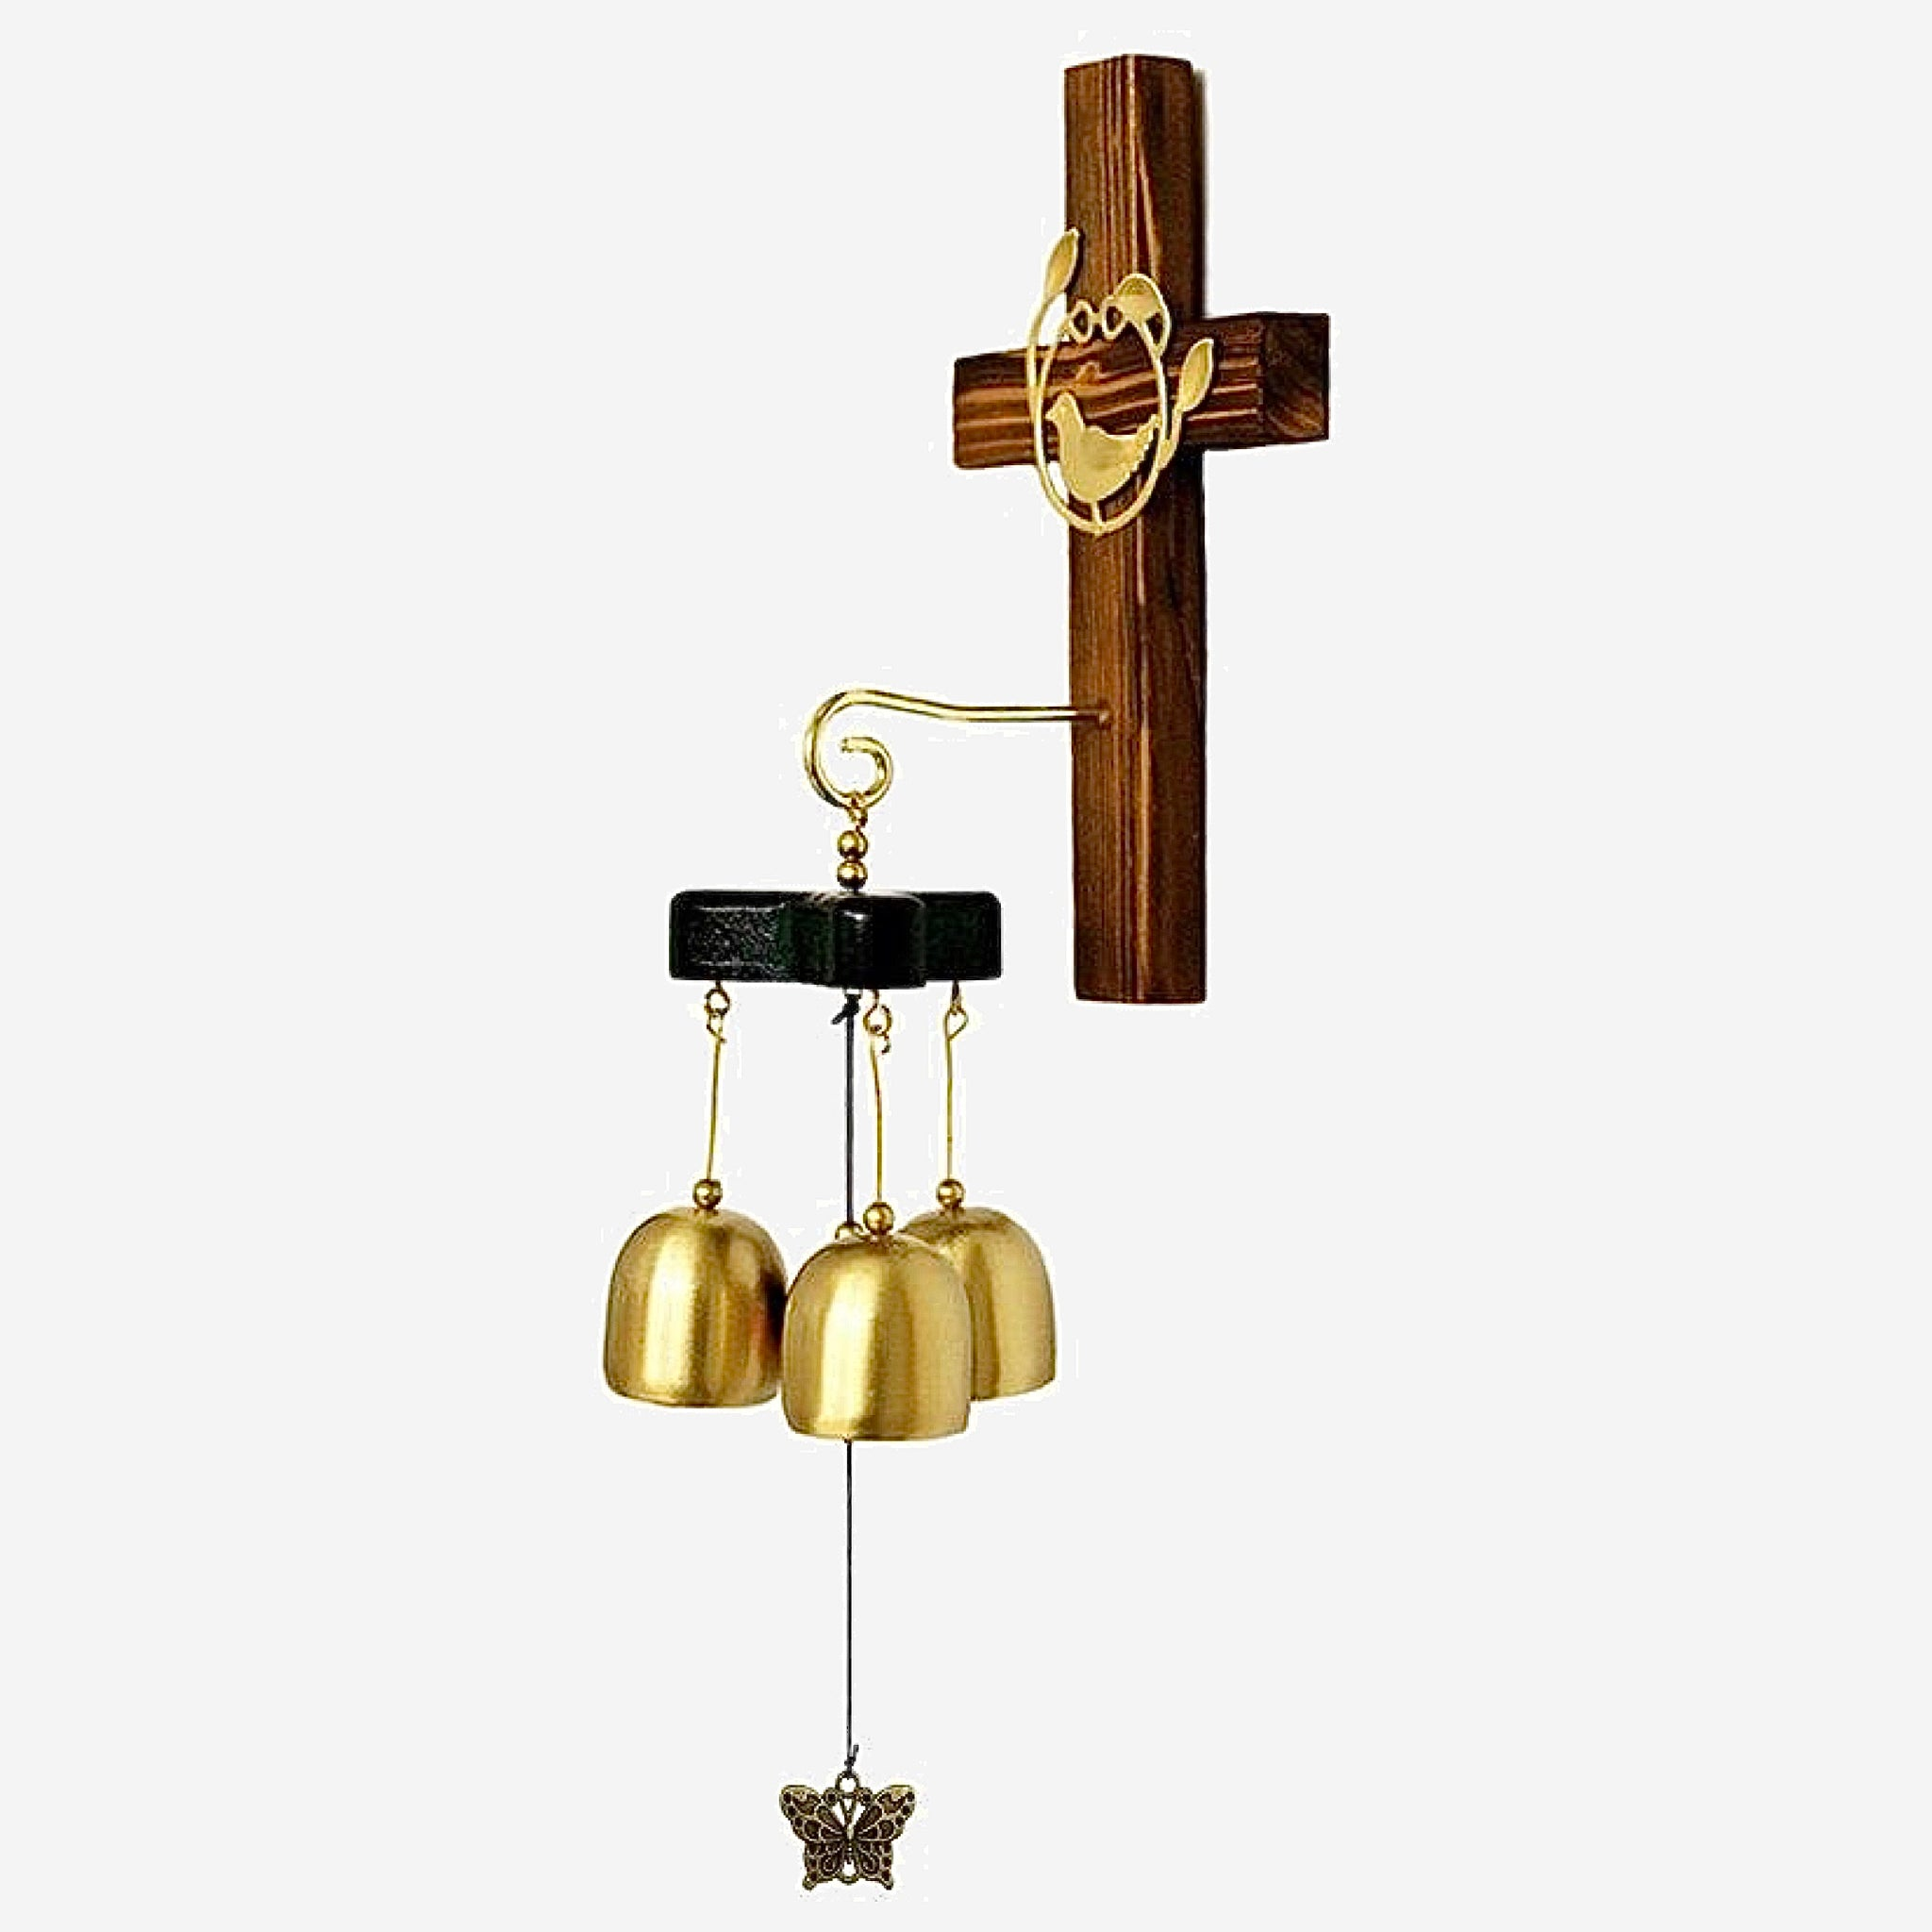 Cross Copper Wind Chime 3-Bell Metal Home And Garden Decoration Hanging Decor Door Ornament Trend